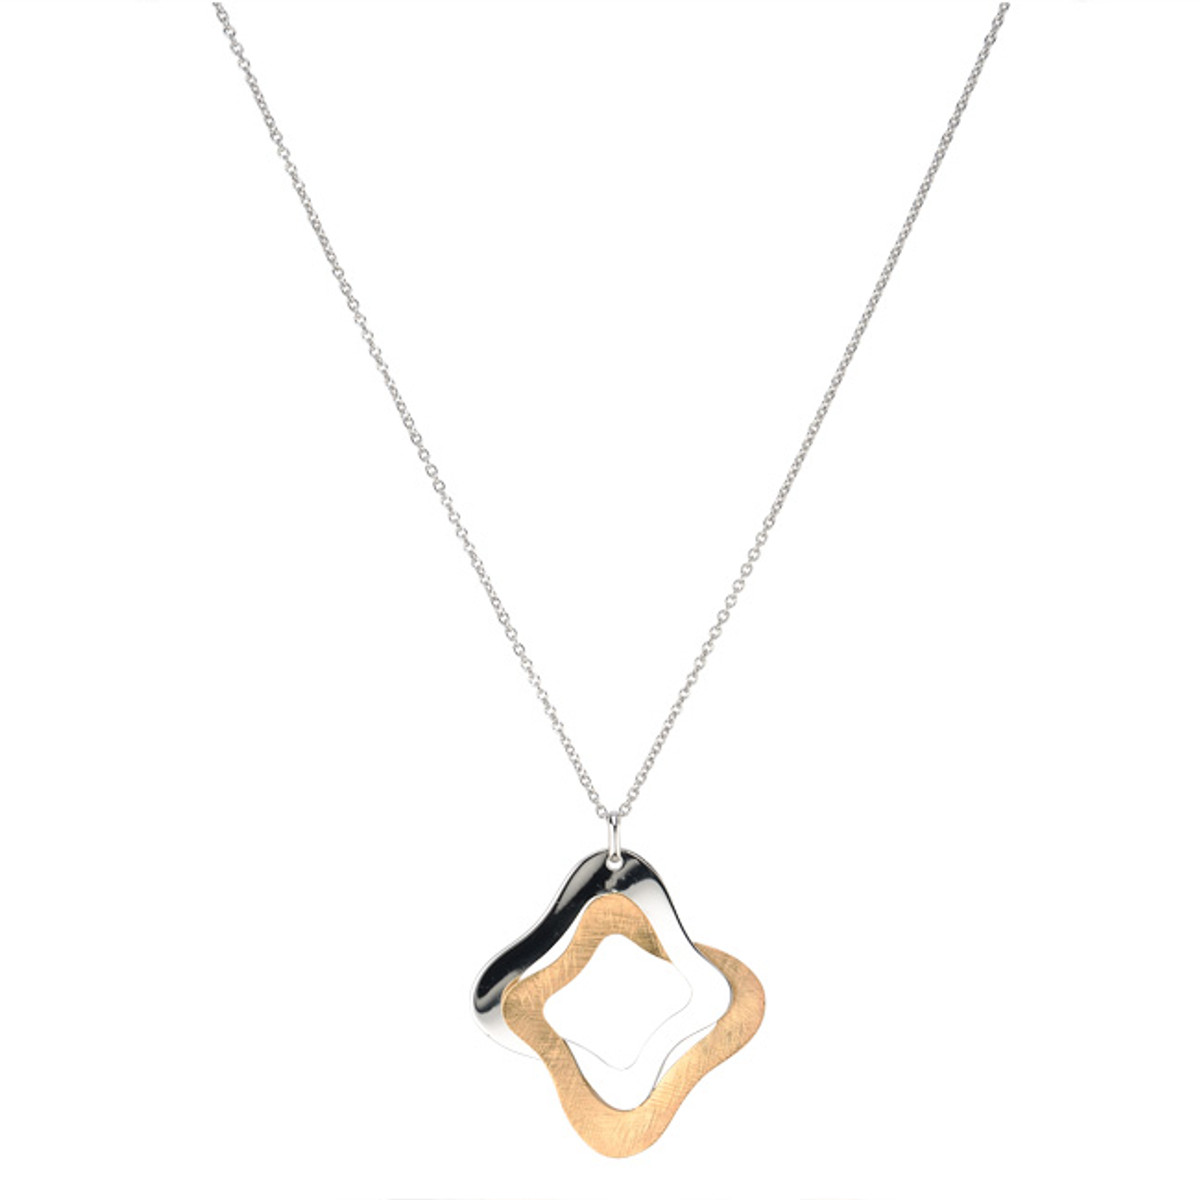 Sterling Silver Gold Overlay Yvonne Necklace, Frederic Duclos